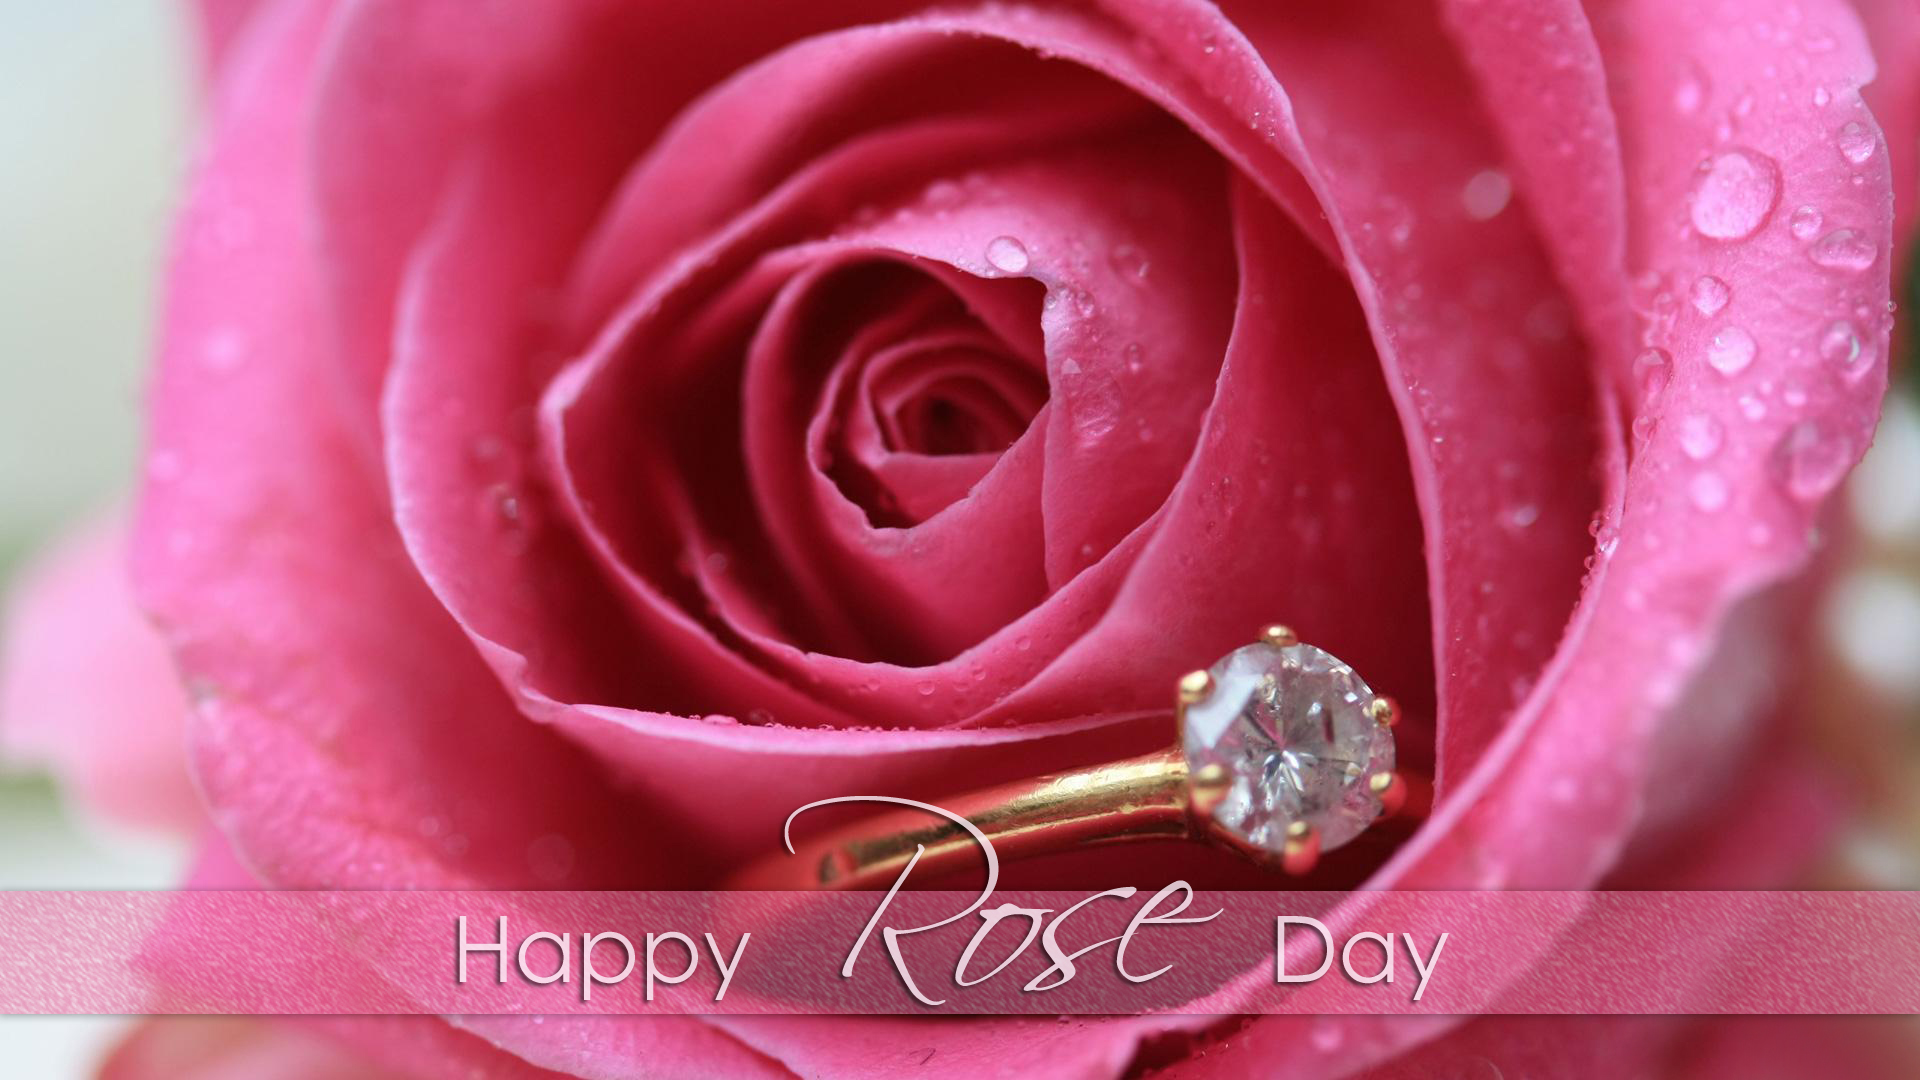 Happy Rose Day 2018 HD Wallpaper Free Download